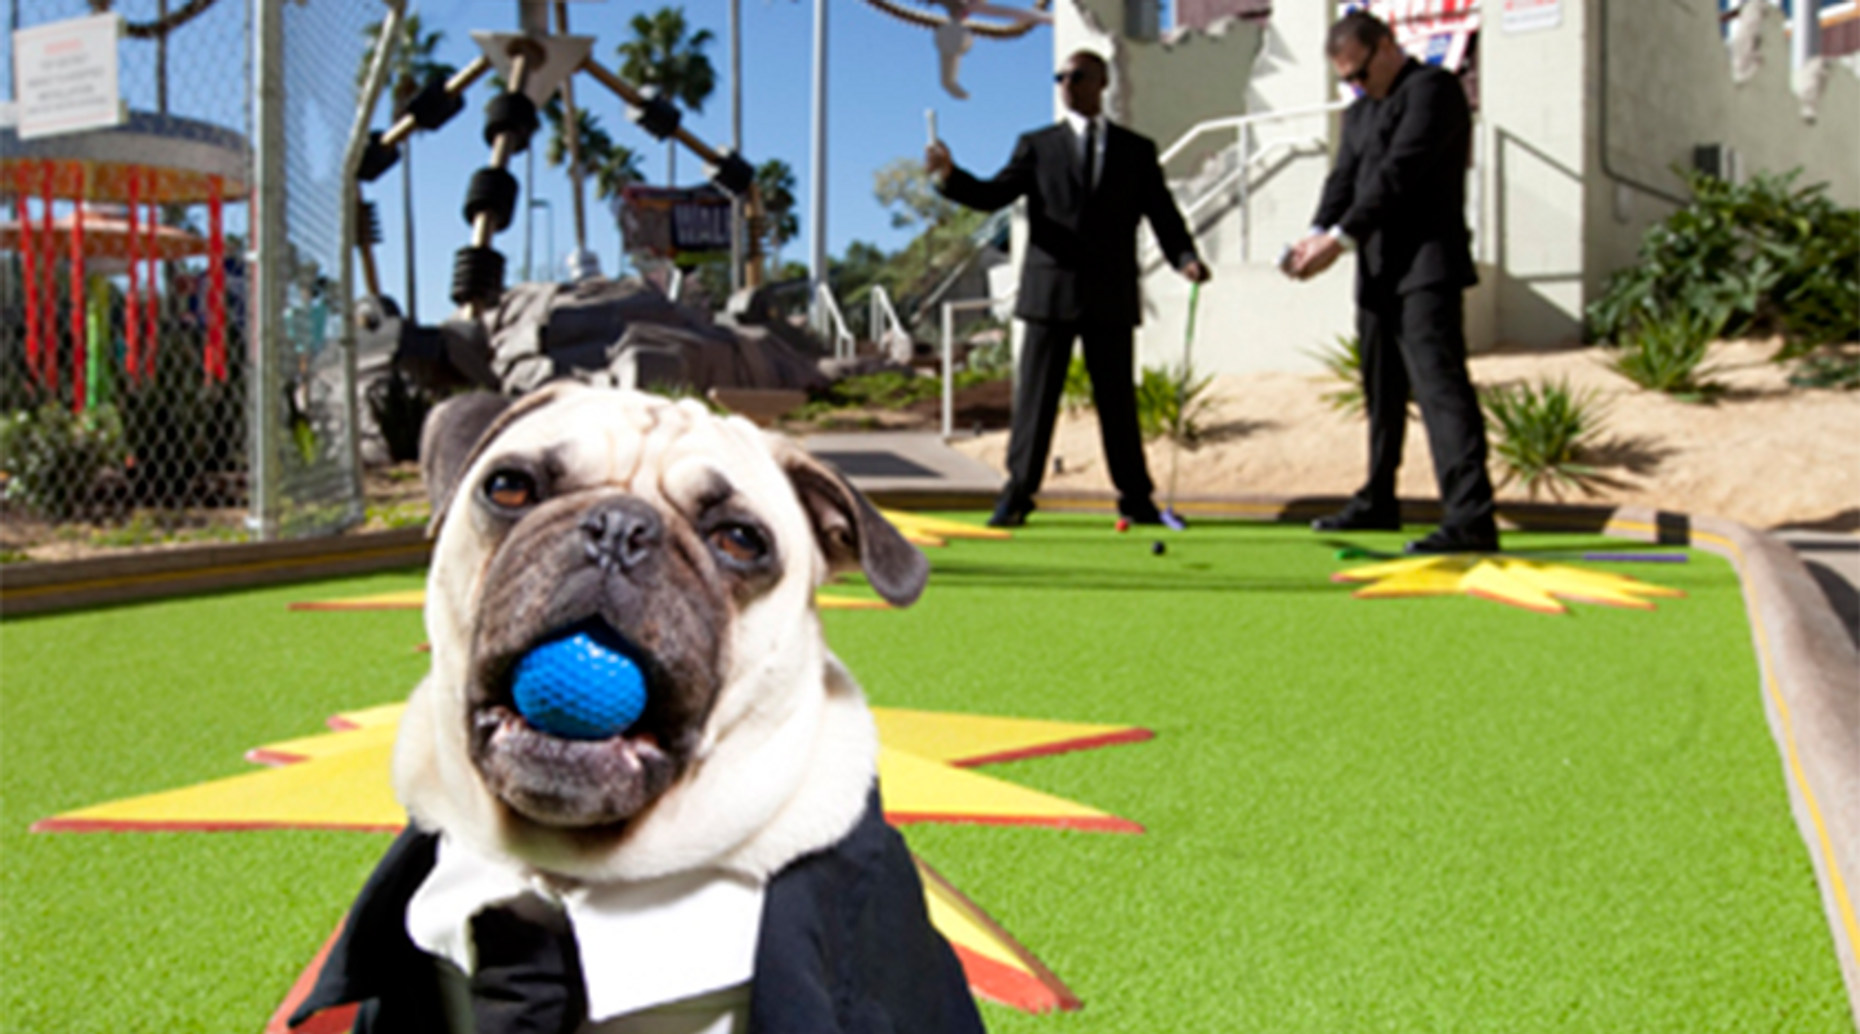 Hollywood Drive-In Golf: Outrageous Mini Golf!